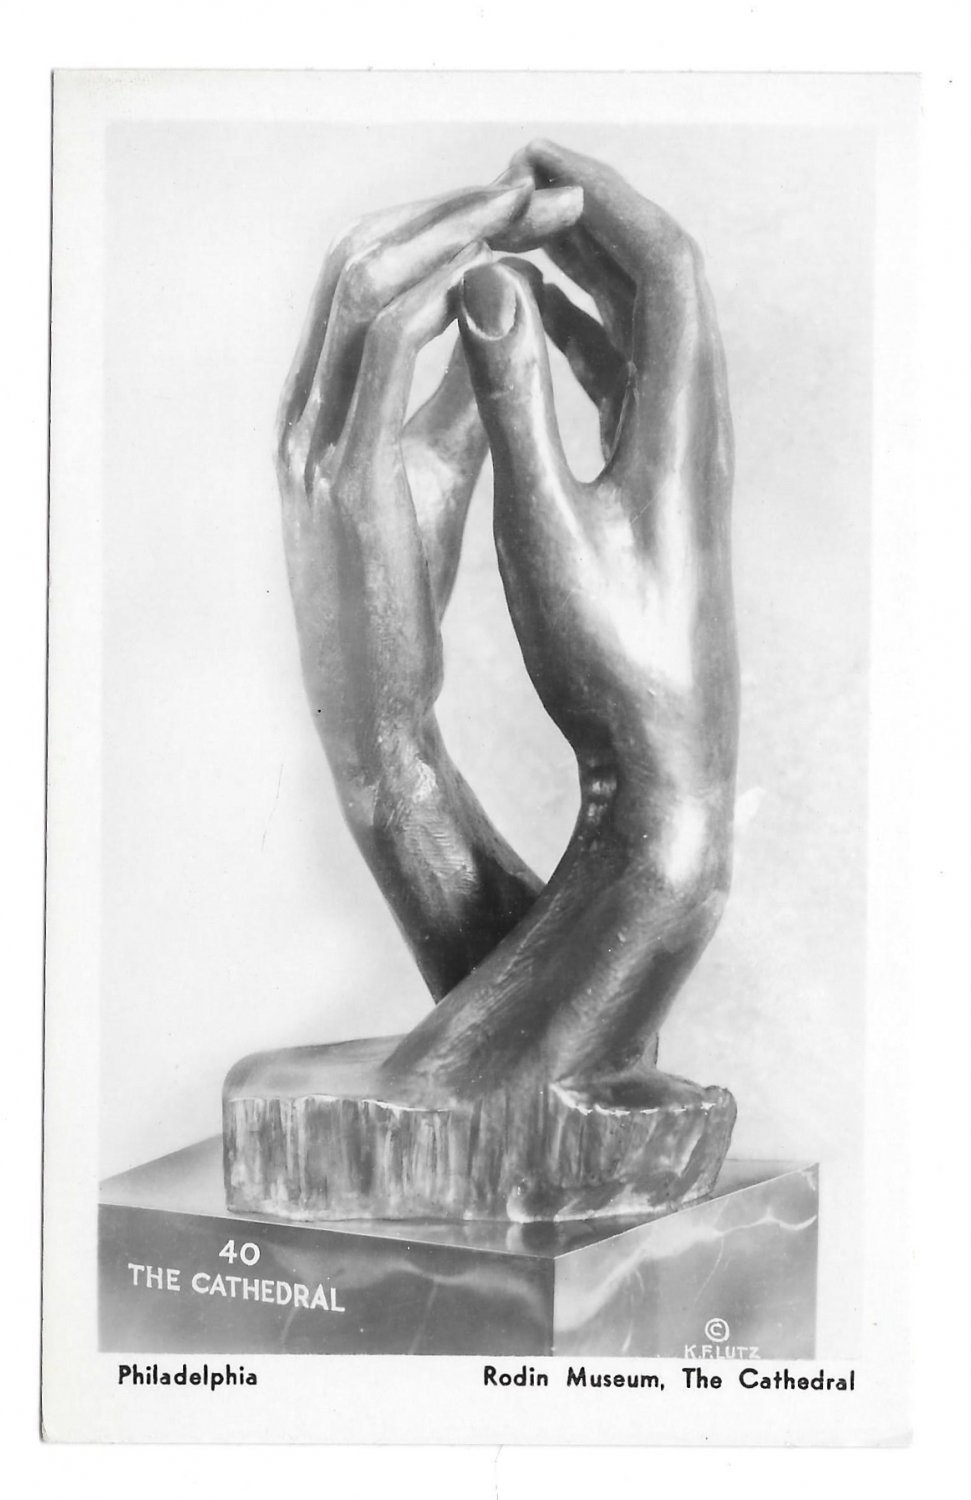 Sculpture The Cathedral Rodin Museum Philadelphia PA K F Lutz 1935 Glossy Postcard